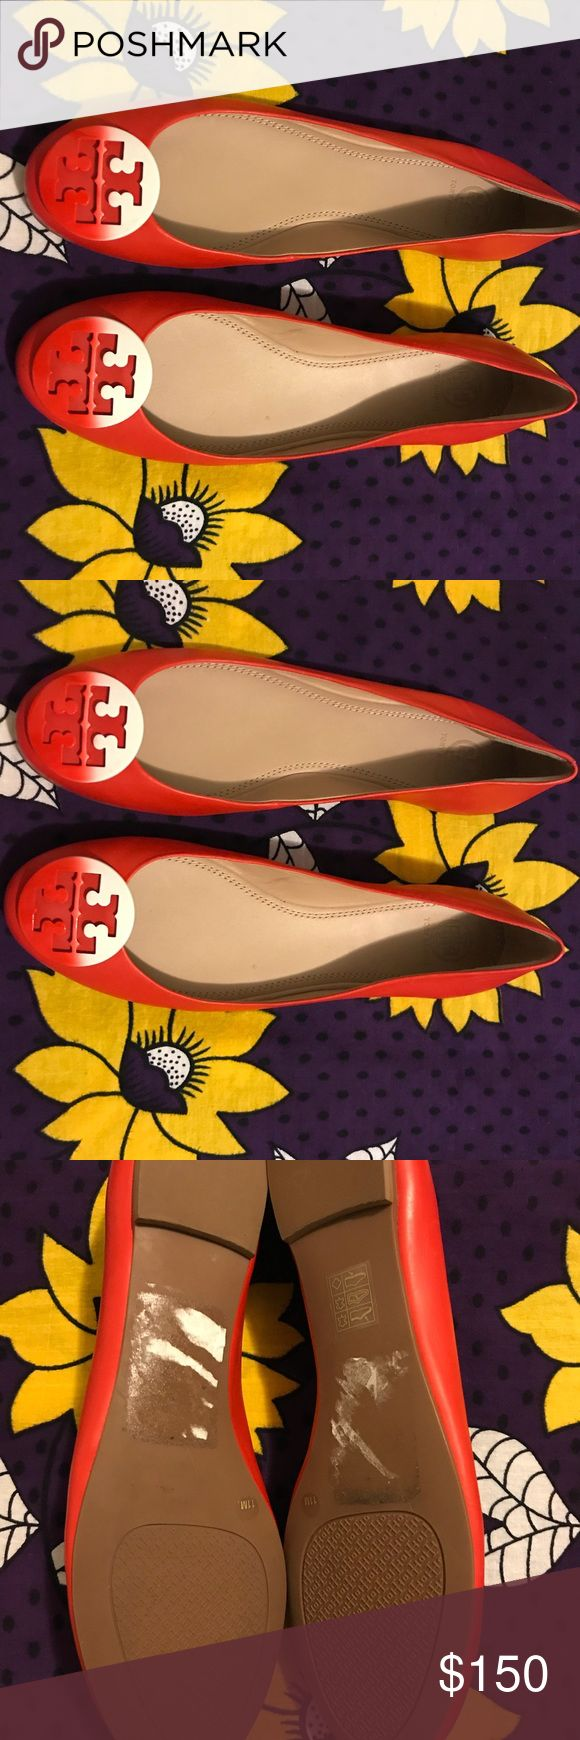 Selling ladies shoes and clothes Selling elegant ladies clothes and shoes Tory Burch Shoes Flats & Loafers